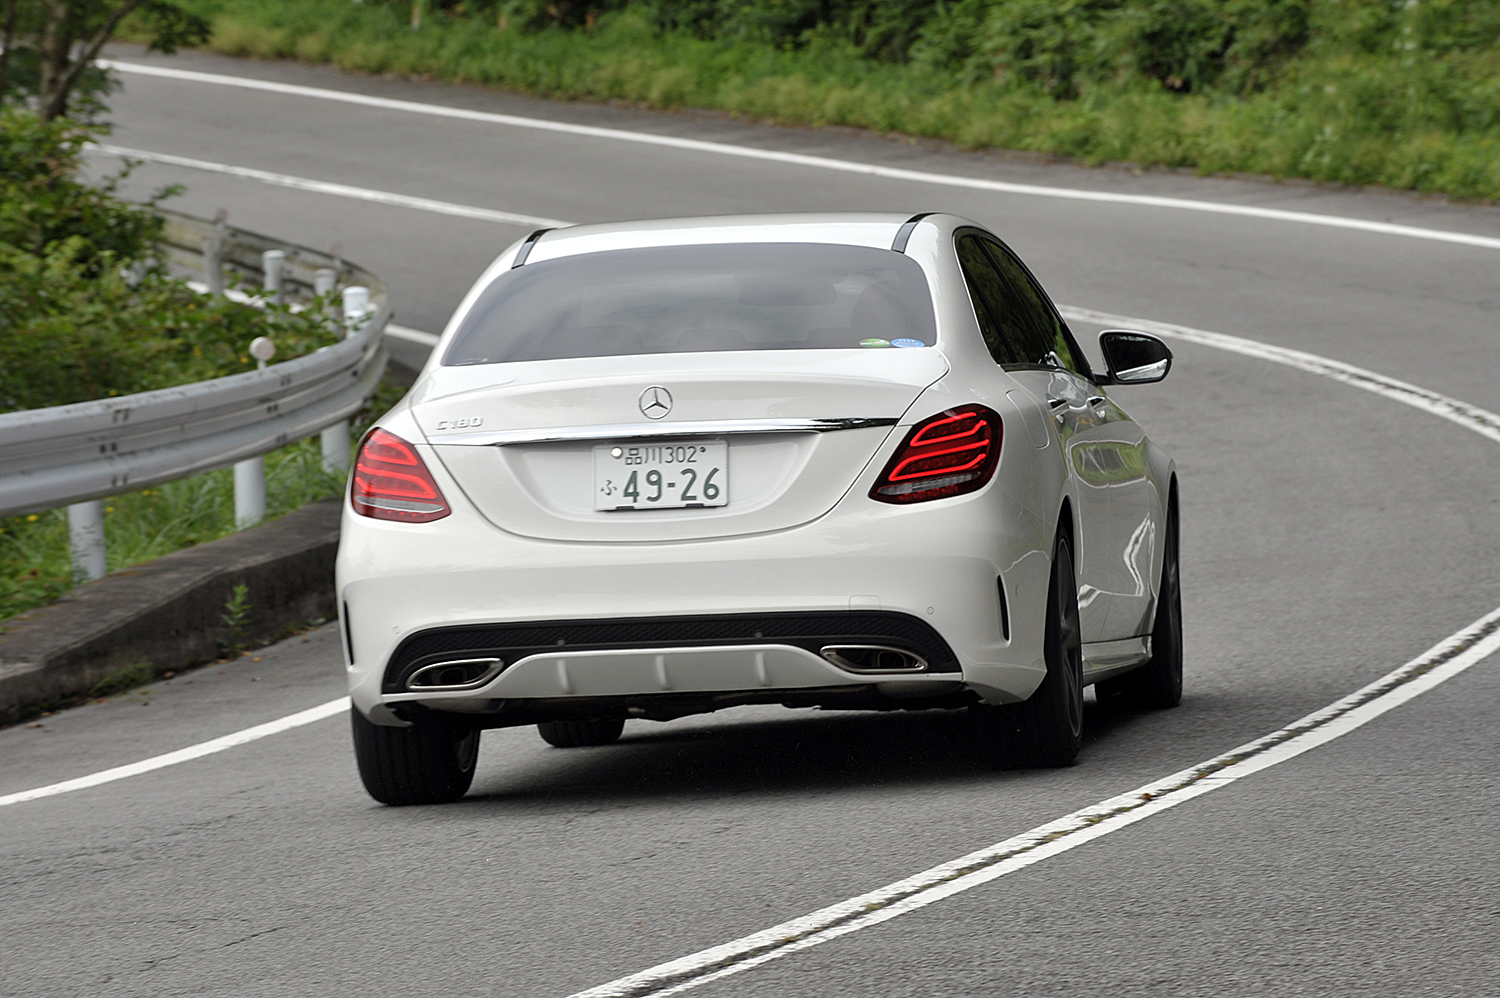 Mercedes-Benz The C-Class Laureus Edition